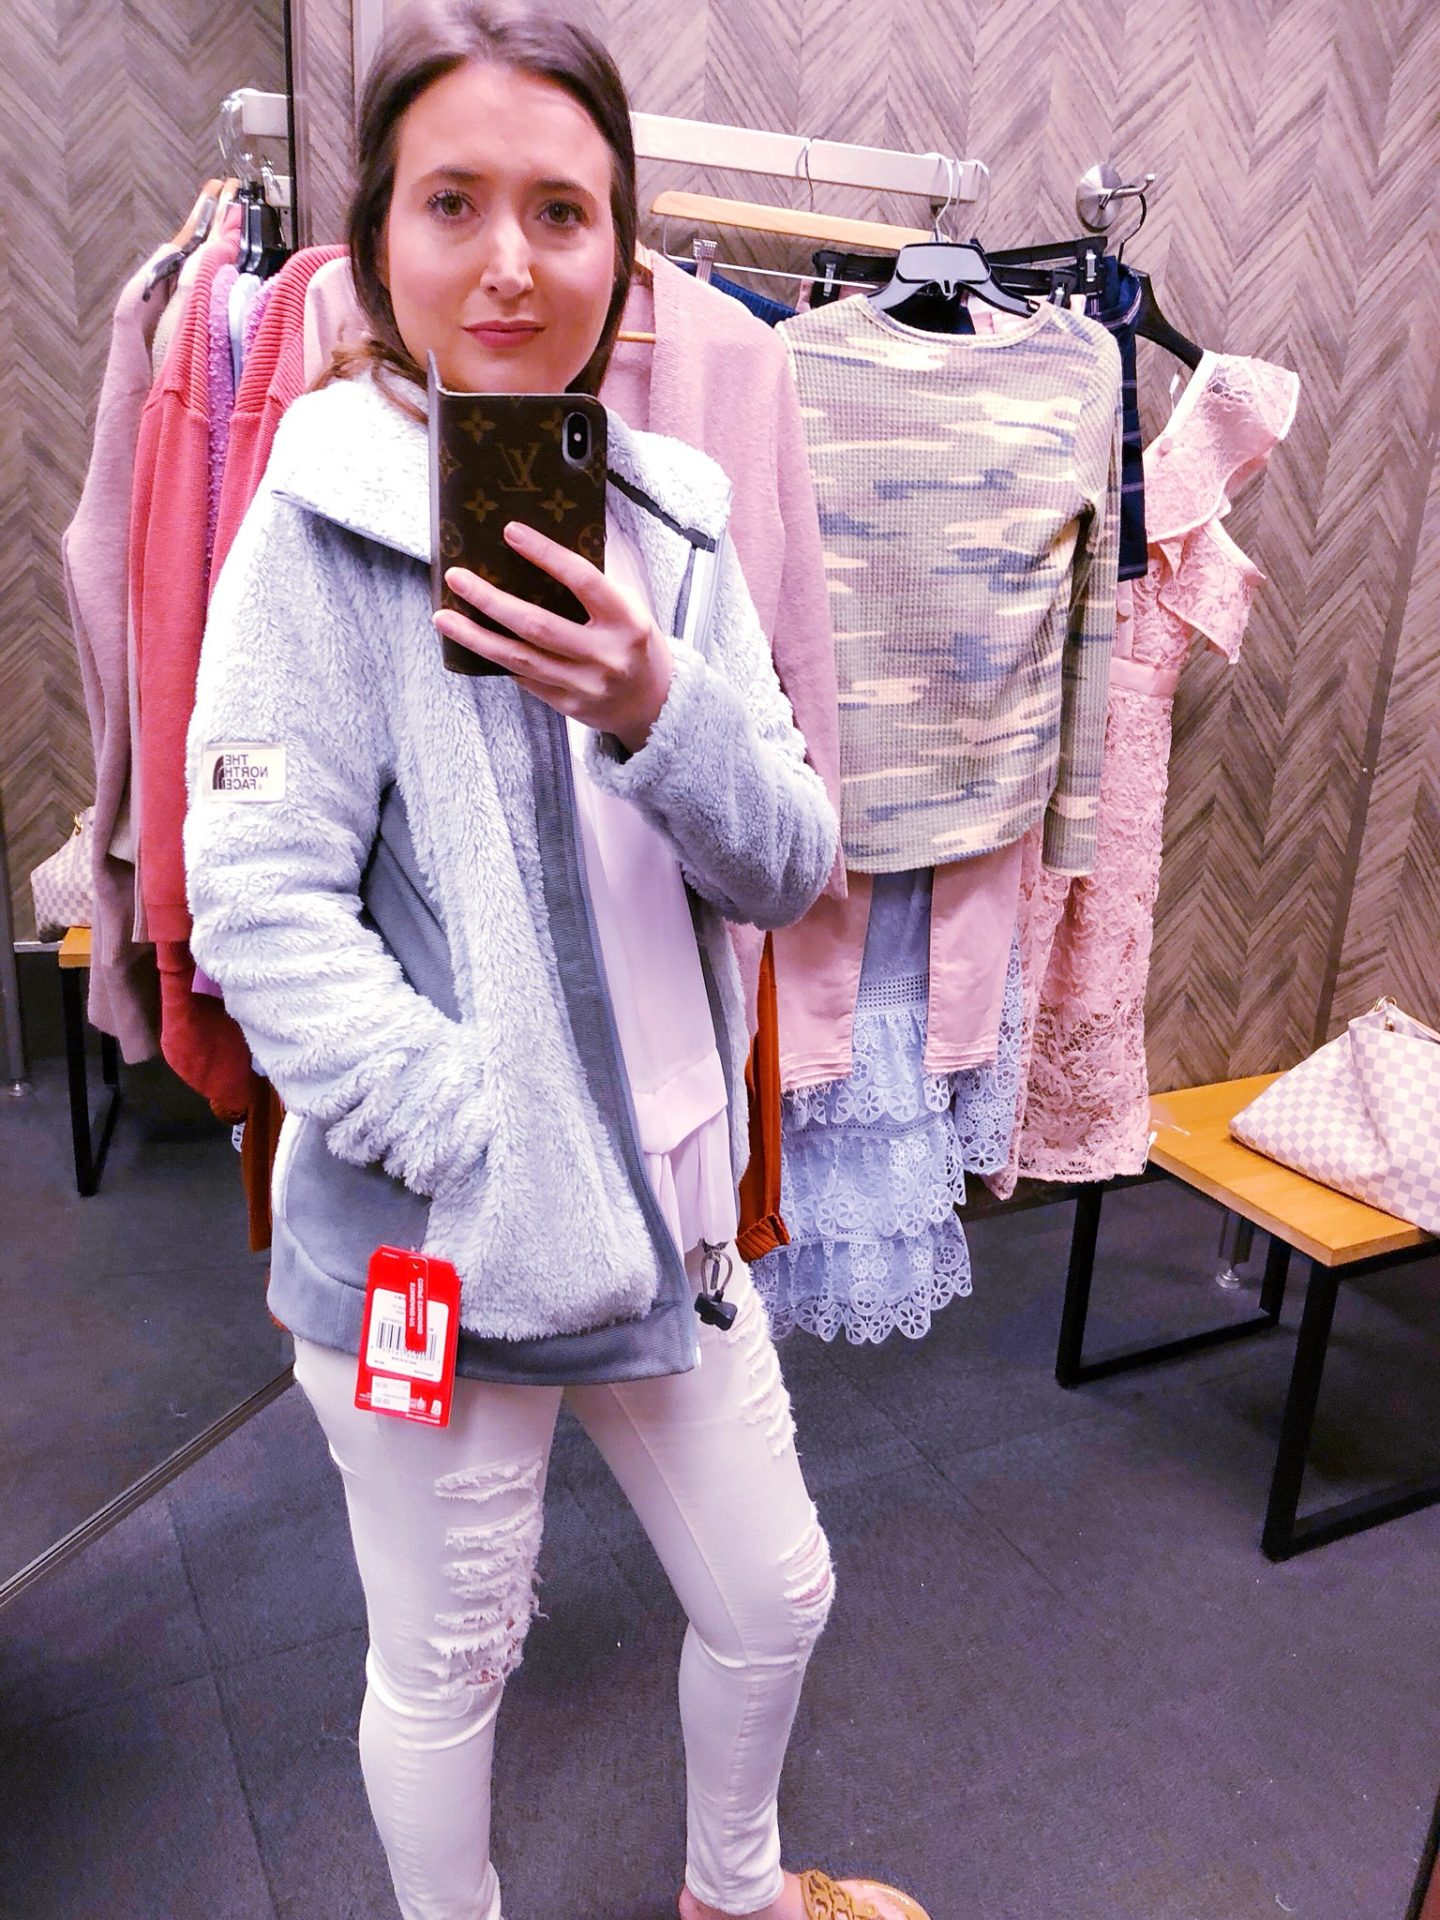 The North Face furry fleece jacket, Nordstrom anniversary sale, Nordstrom anniversary sale 2018, Nordstrom anniversary sale haul, Nordstrom anniversary sale dressing room try-on